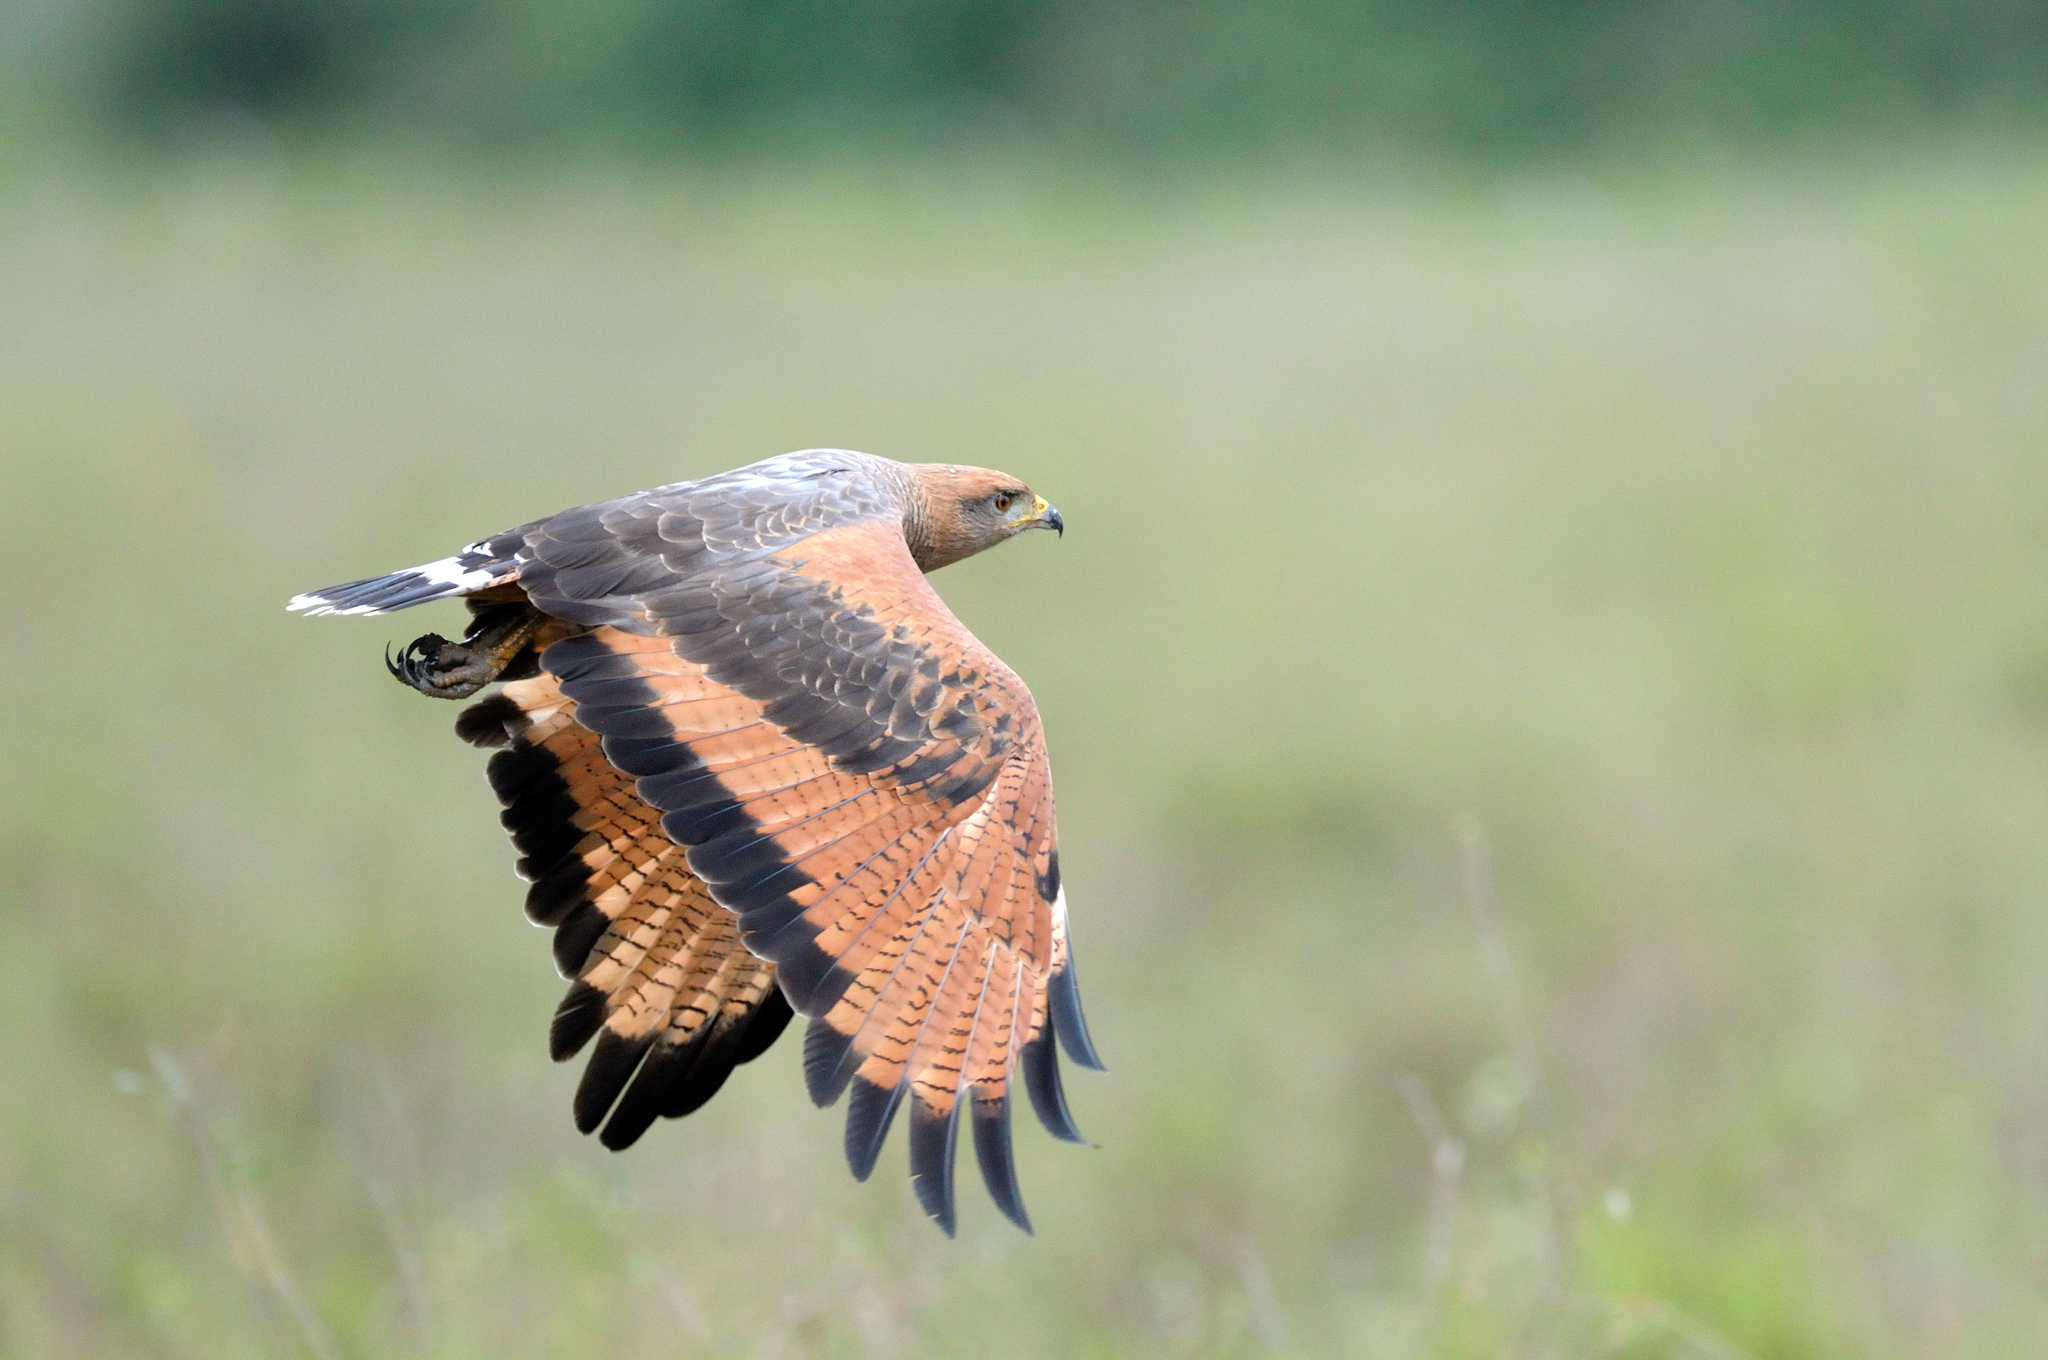 Savanna Hawk - Pantanal - Brazil - Rich